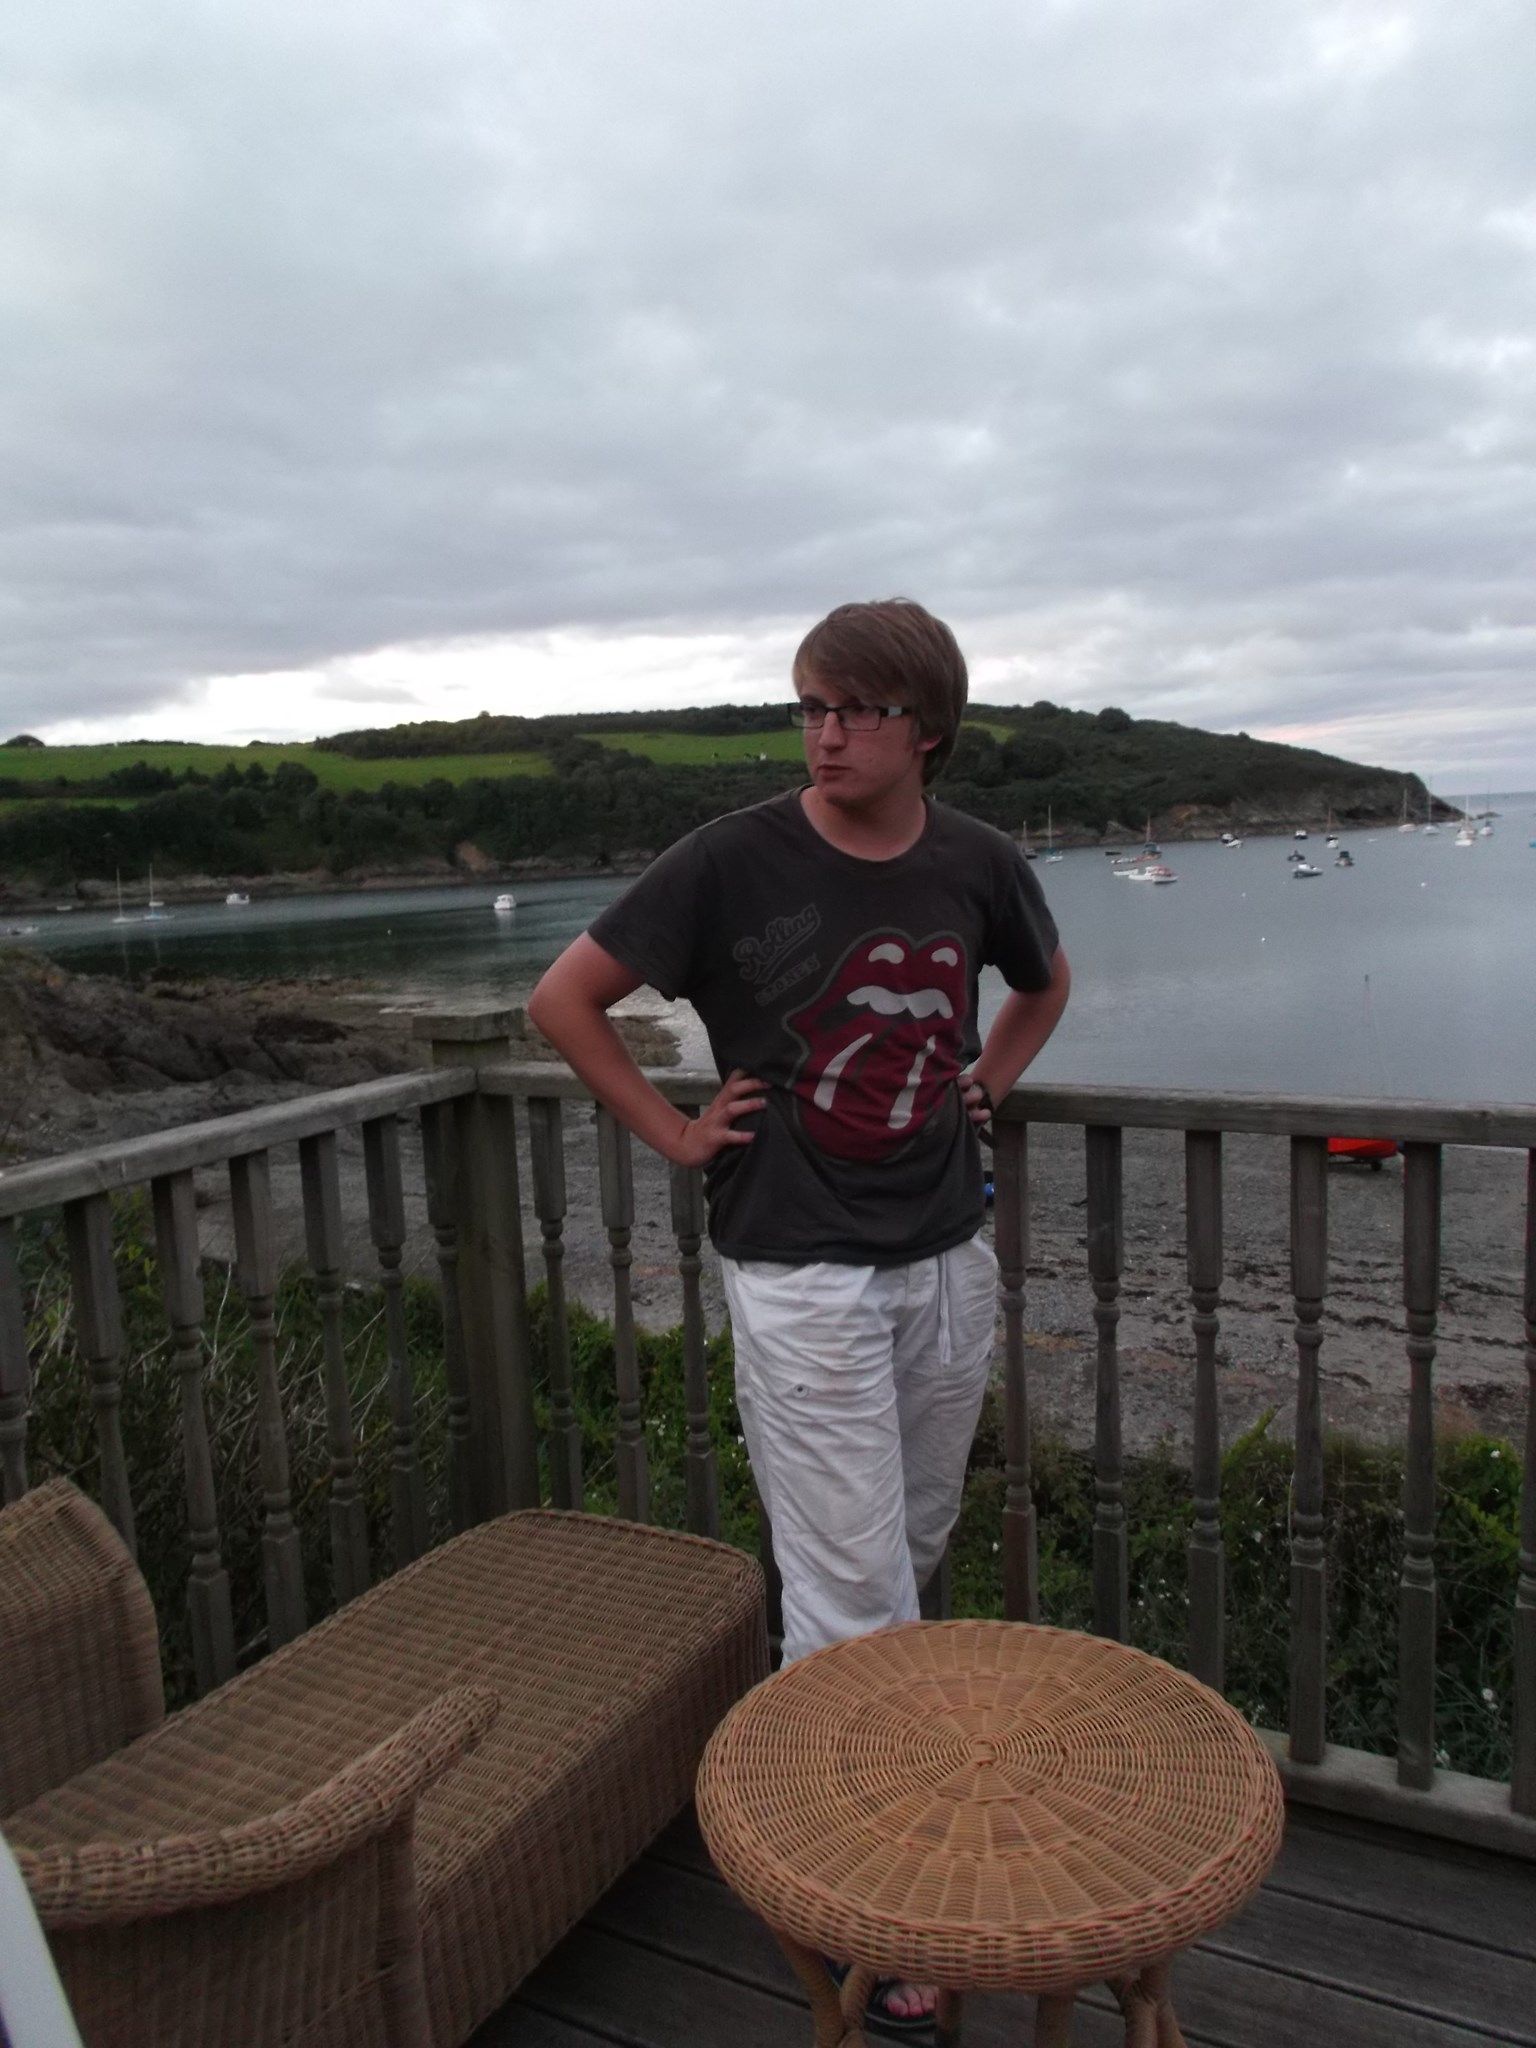 On holiday in Cornwall